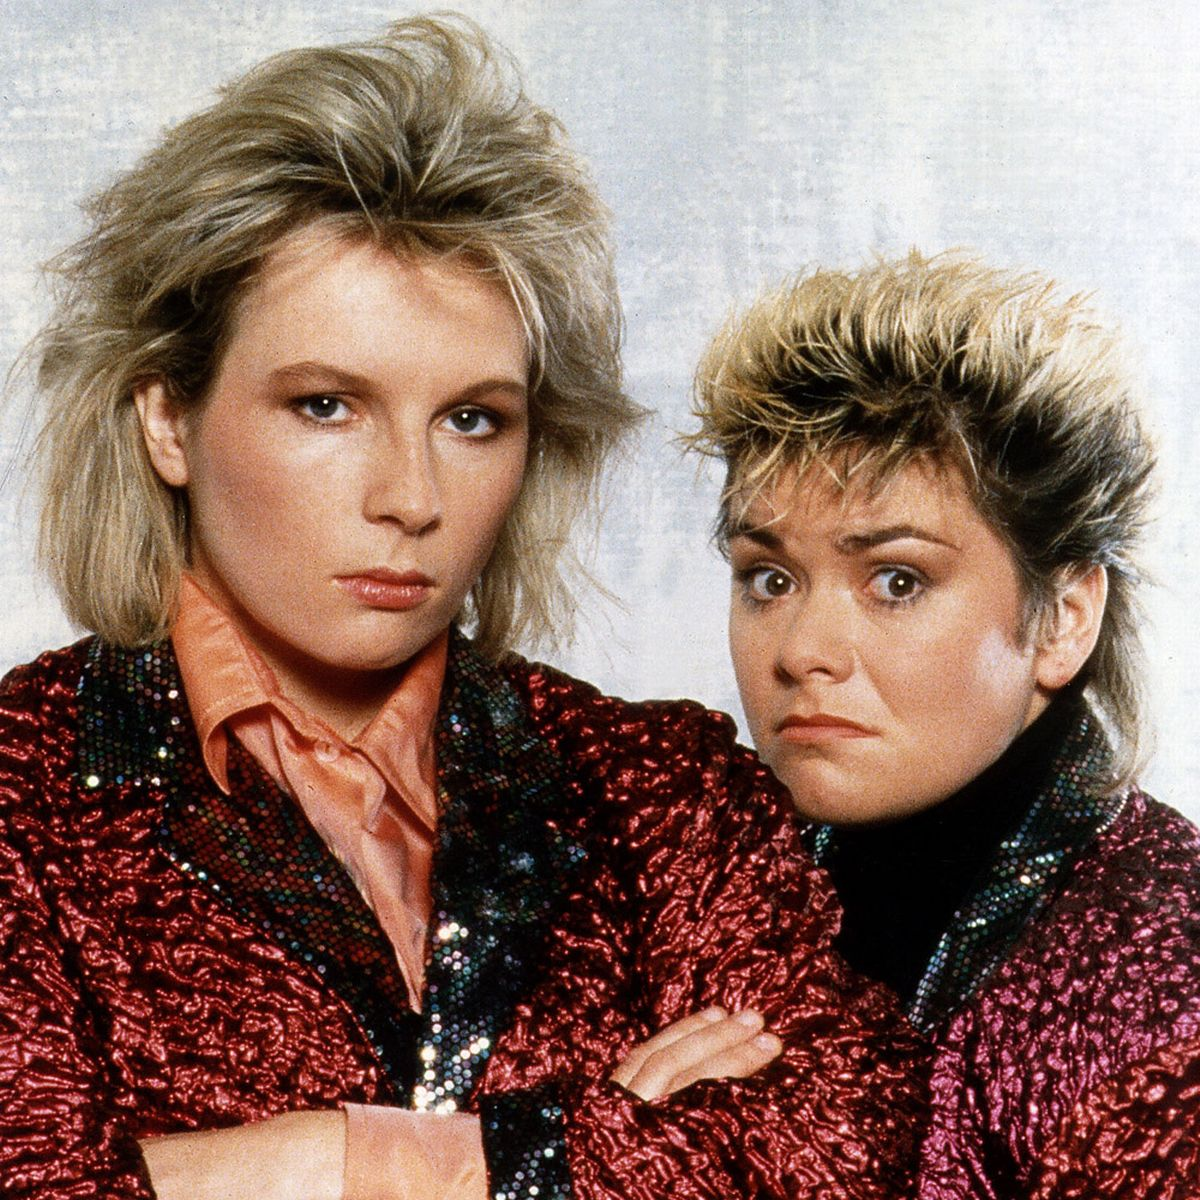 Dawn French and Jennifer Saunders 10 TV Comedy Double Acts That All True 80s Kids Should Remember